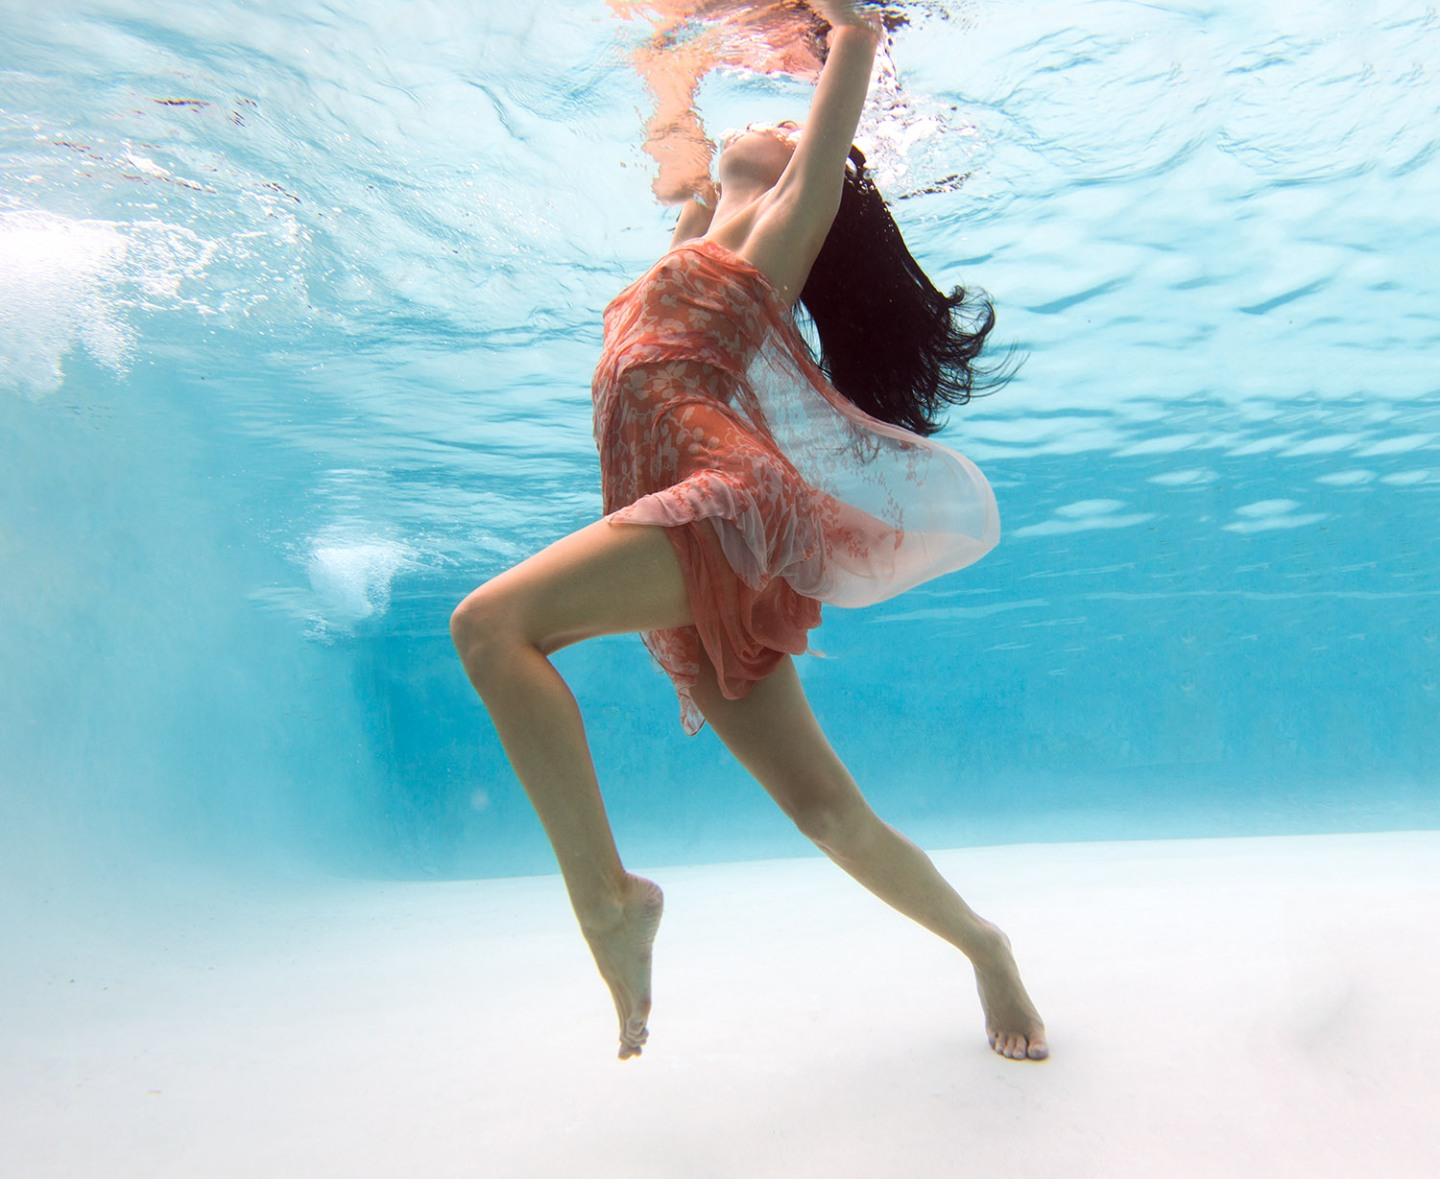 Cristina Sandu Underwater Pool Shoot Photo: Chuck Espinoza @ChuckEspinozaPhoto